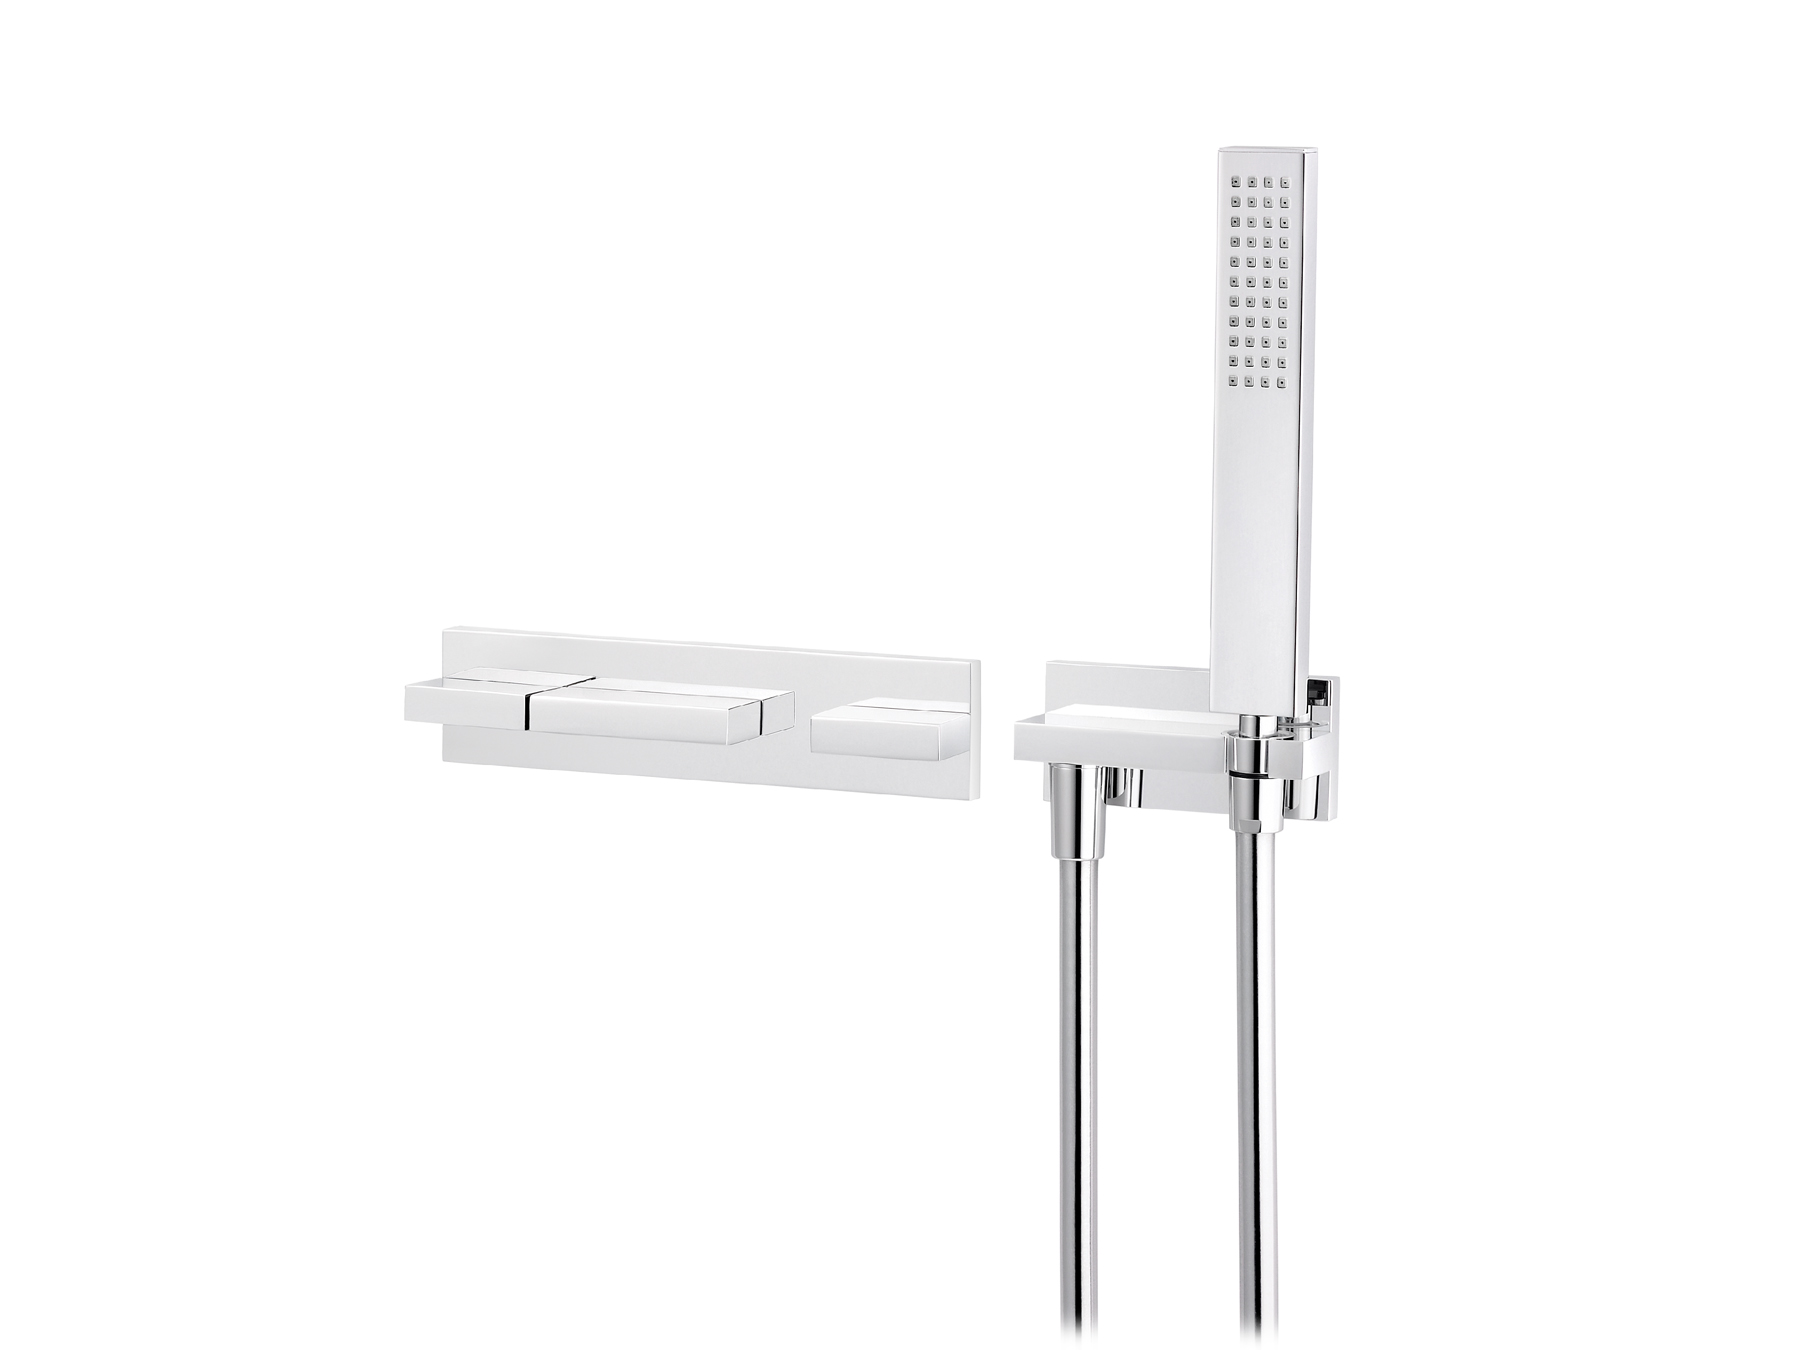 Concealed bath and shower mixer, without spout 4585.--.74